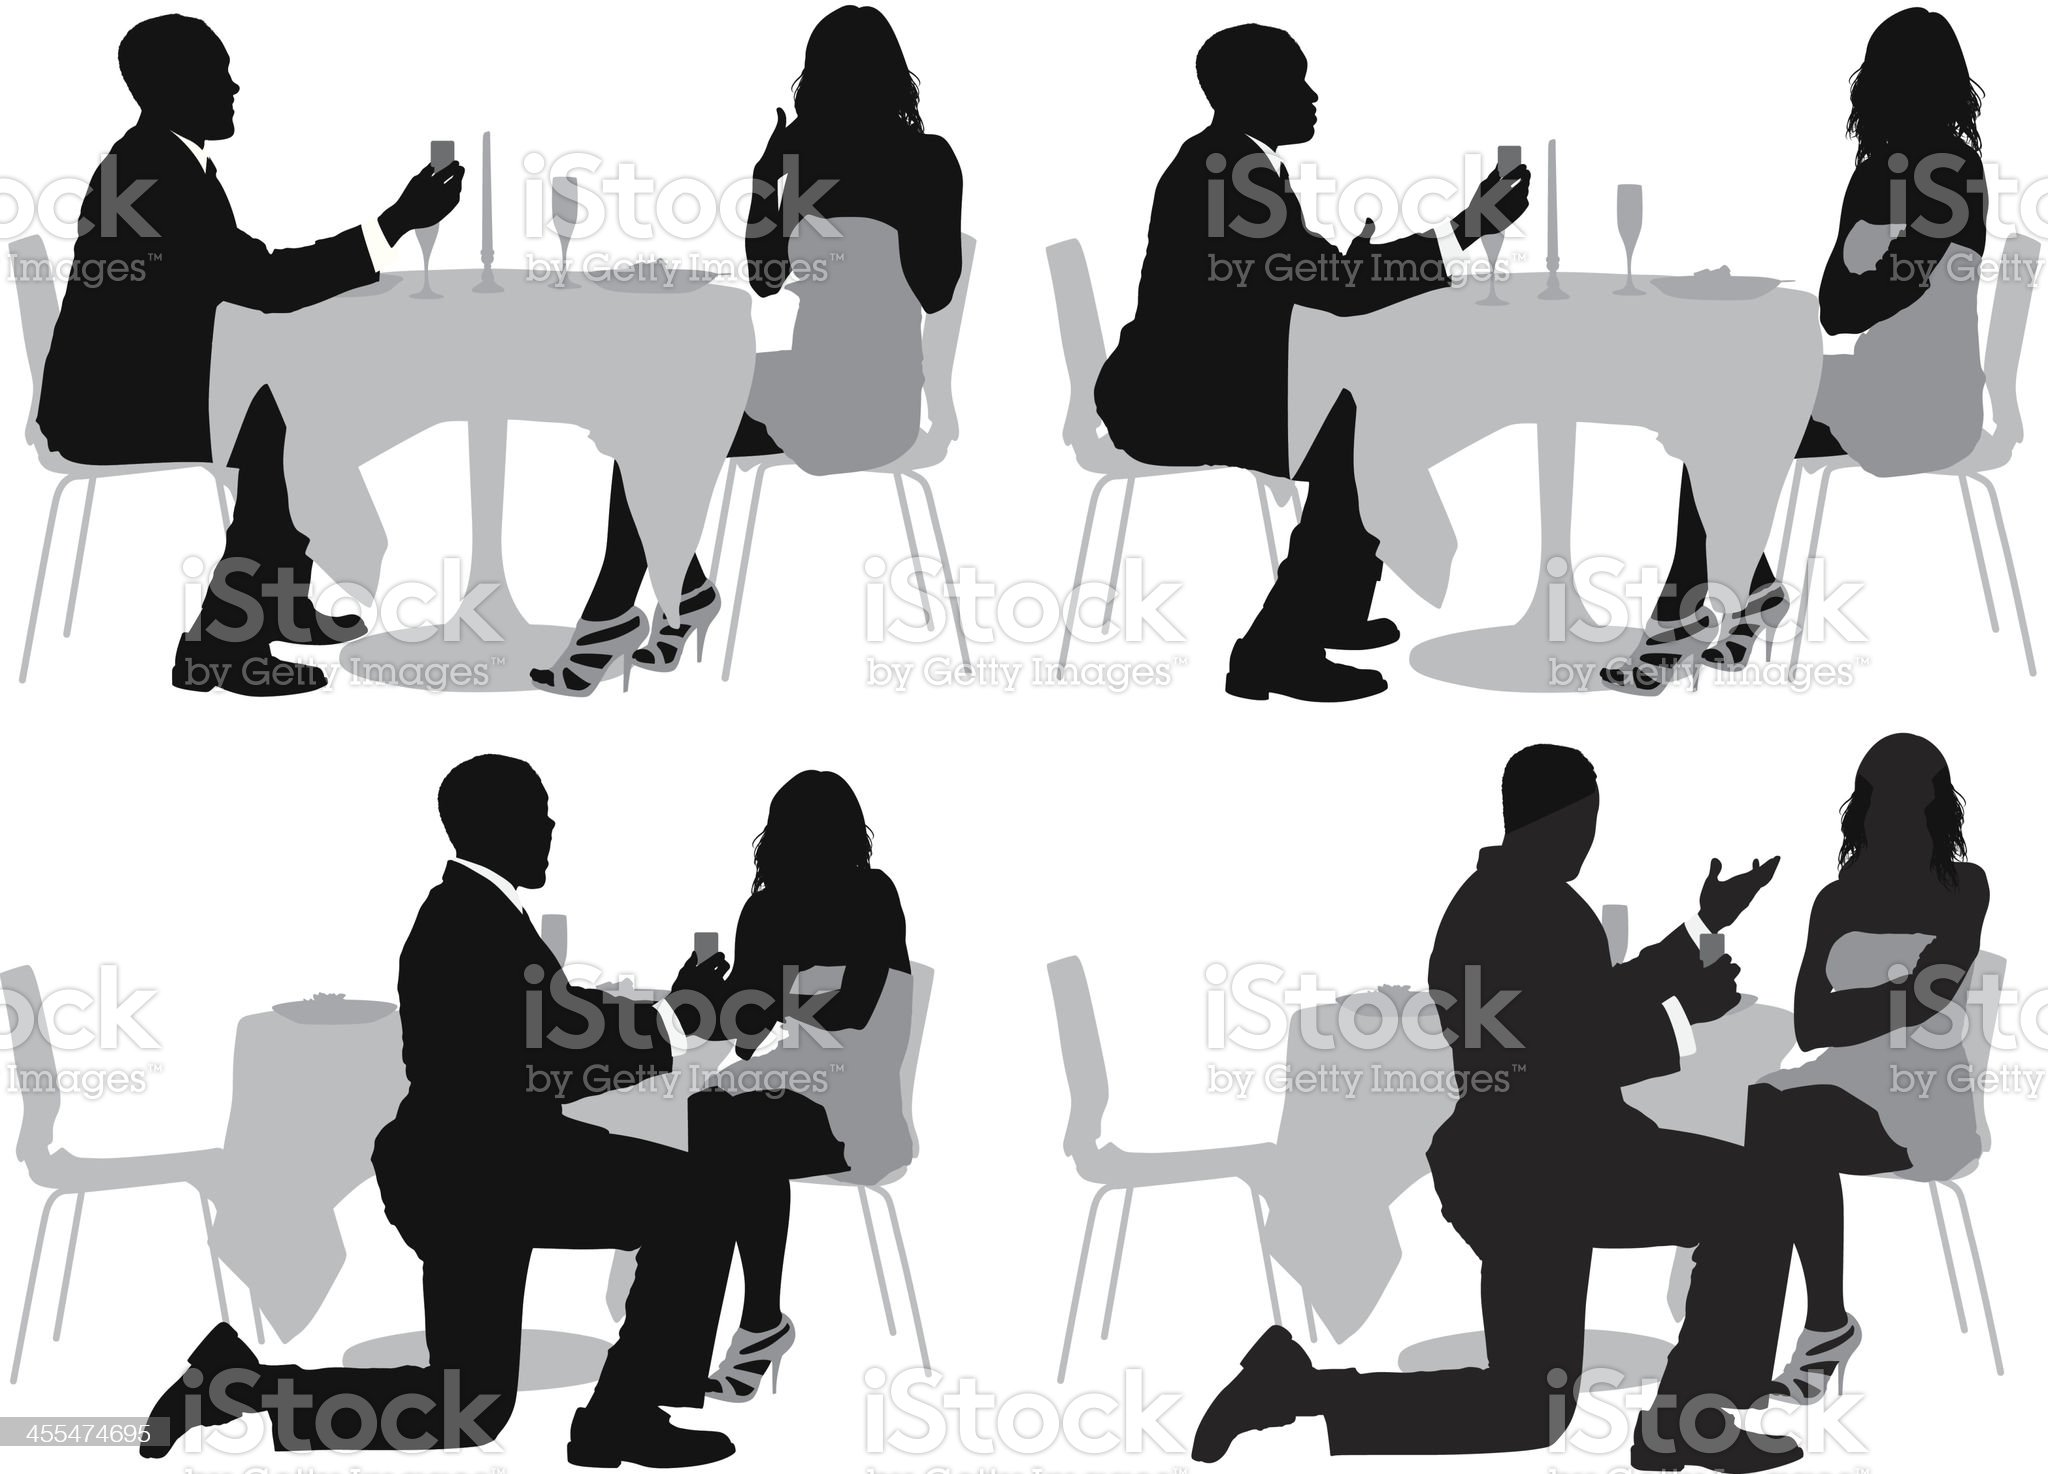 Silhouette of a man proposing to his girlfriend royalty-free stock vector art